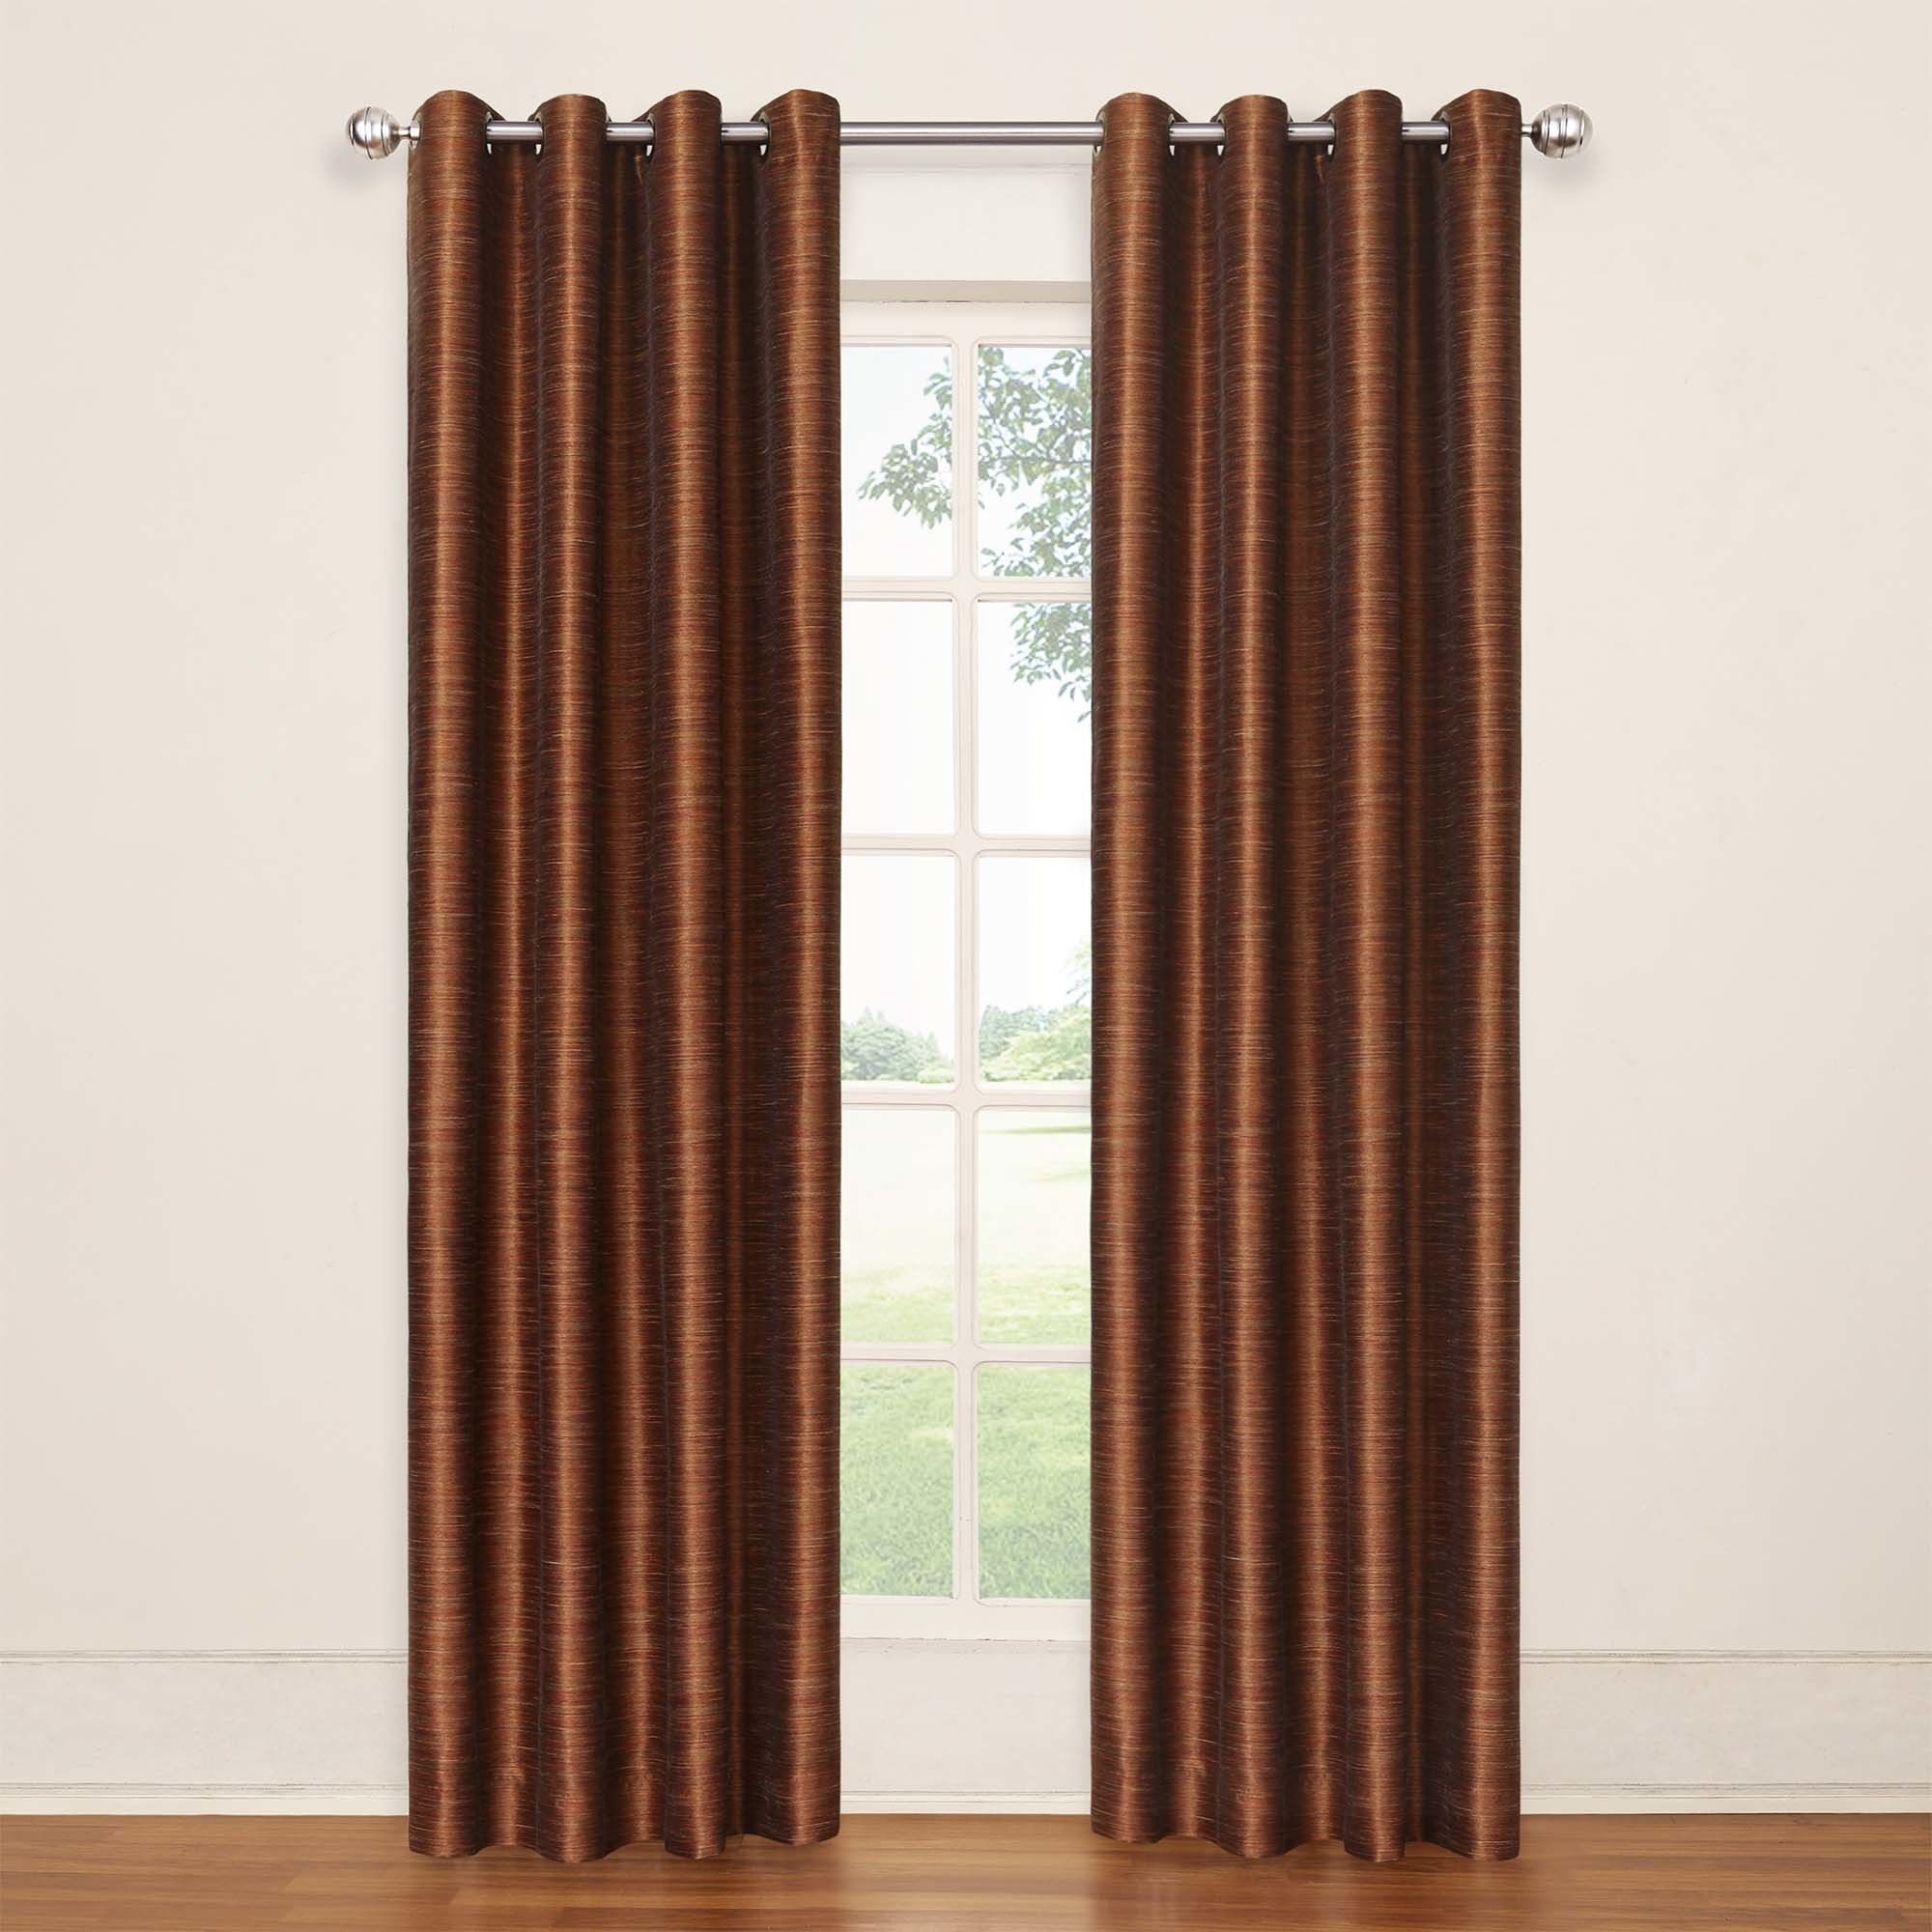 Window coverings to block sun  filomena single curtain blackout panel  products  pinterest  products